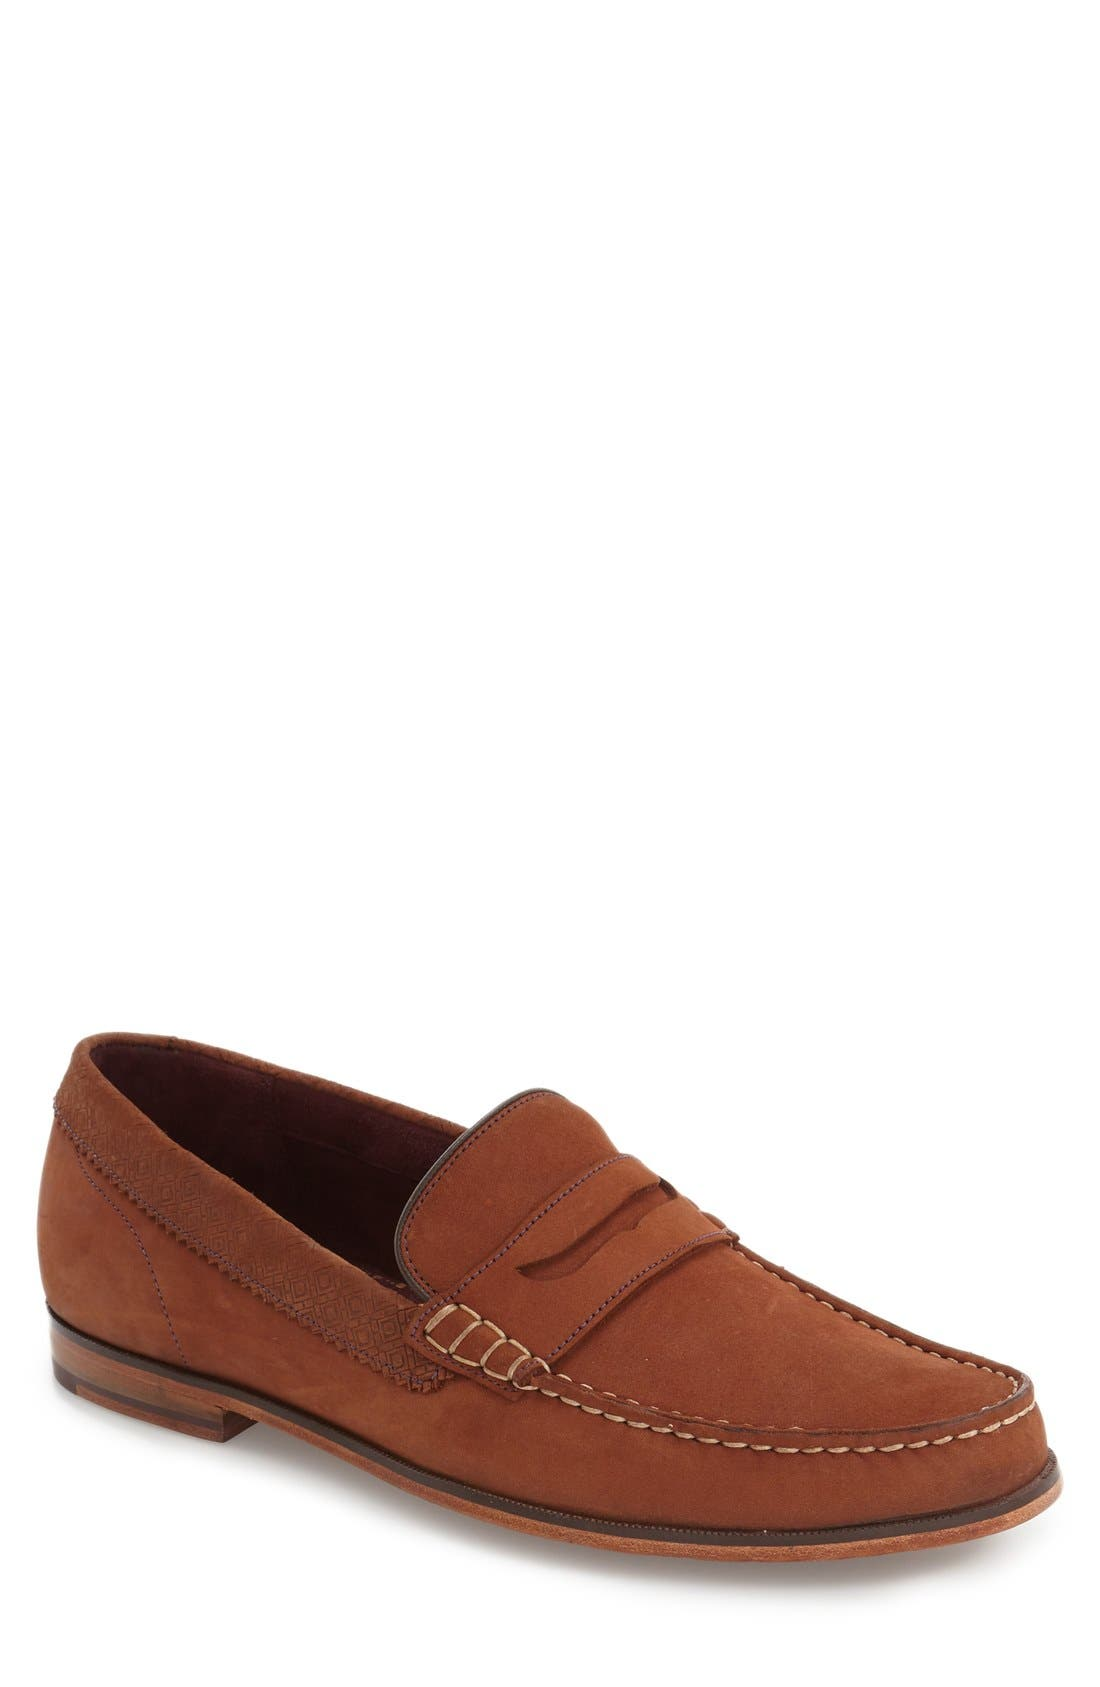 'Miicke 2' Penny Loafer,                         Main,                         color, Dark Orange